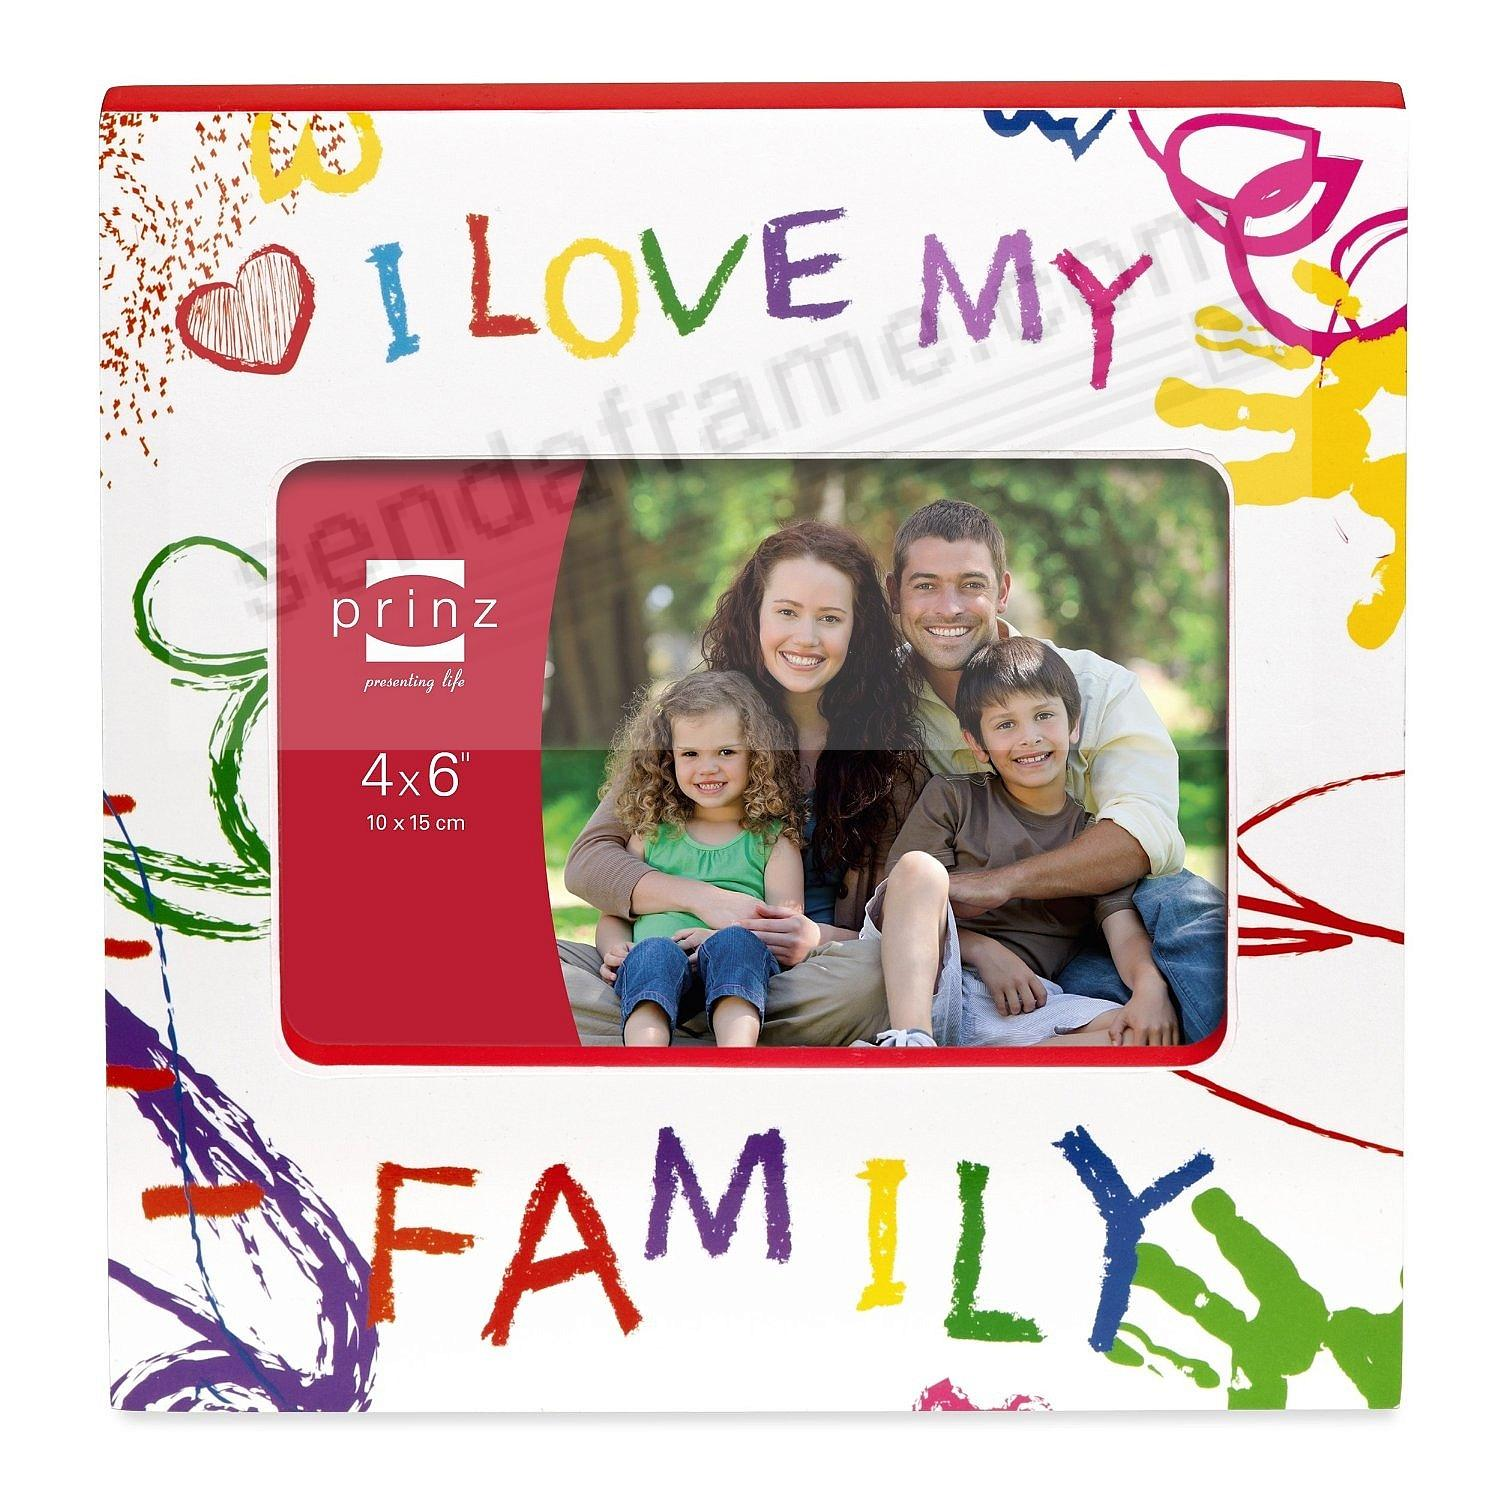 I LOVE MY FAMILY {HEART} 6x4 Wood Frame by Prinz® - Picture Frames ...